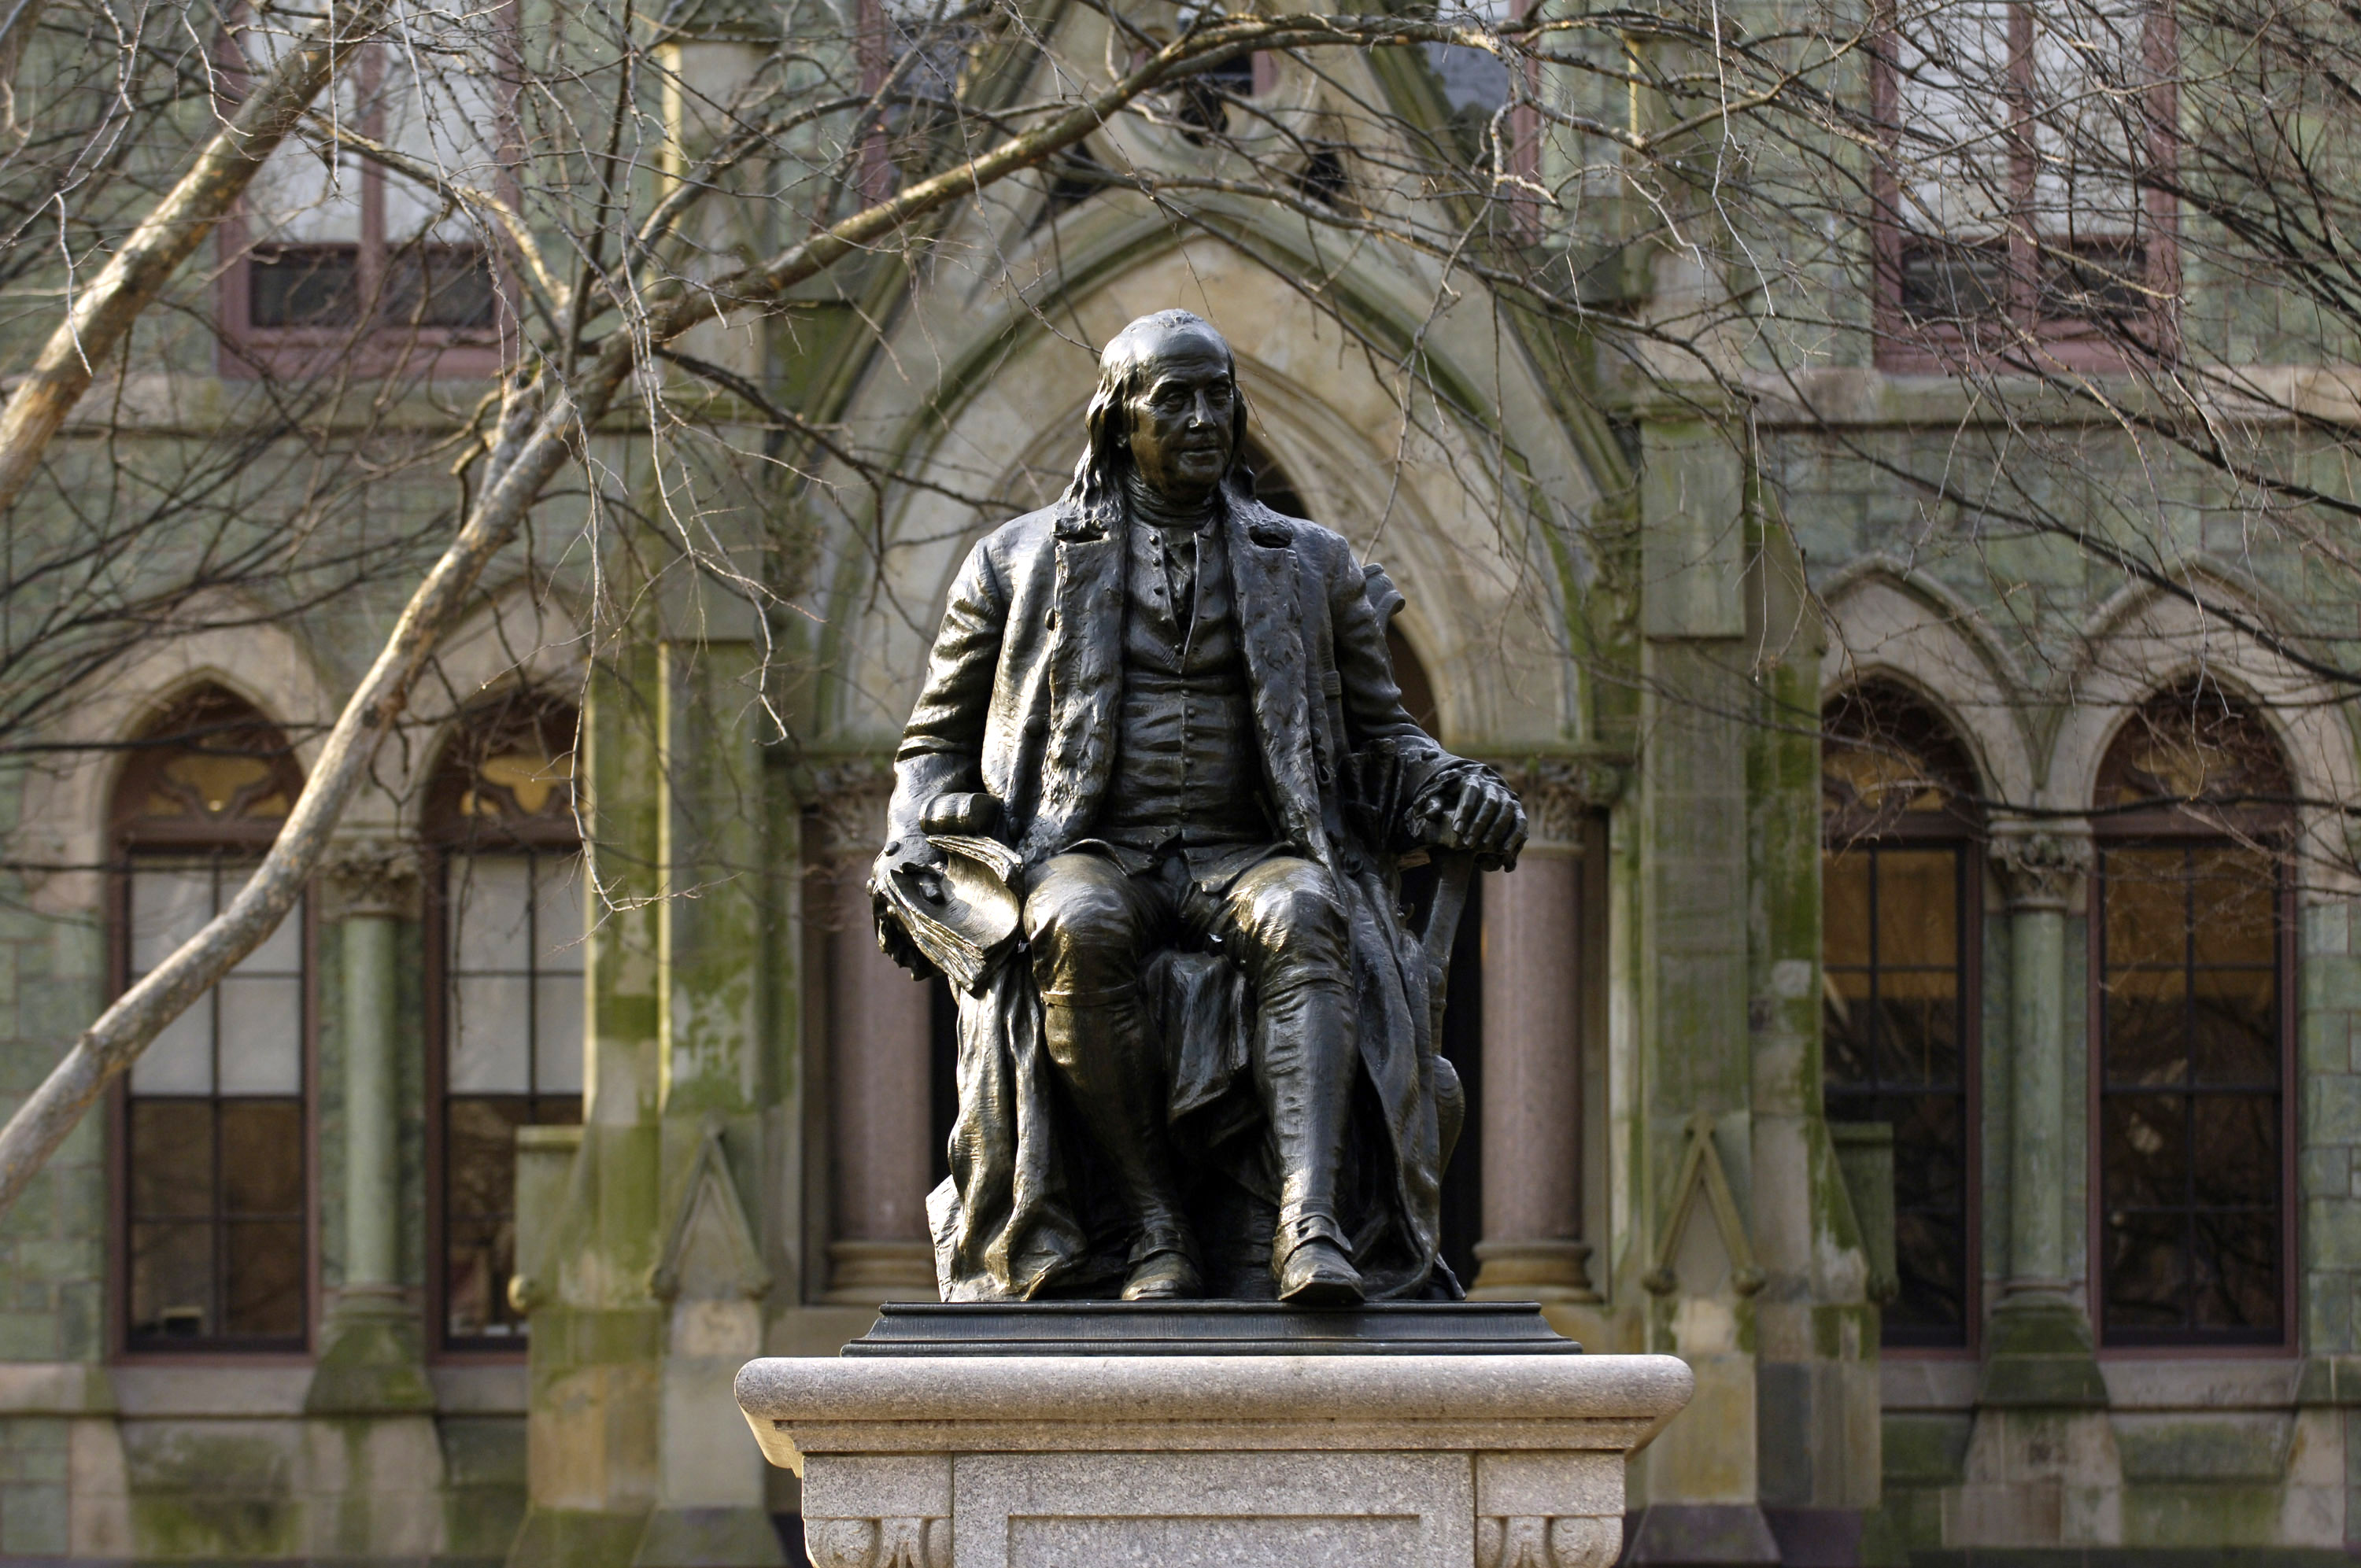 A statue of Benjamin Franklin, founder of the University of Pennsylvania, on the school's campus in Philadelphia, Pennsylvania, on March 15, 2007.